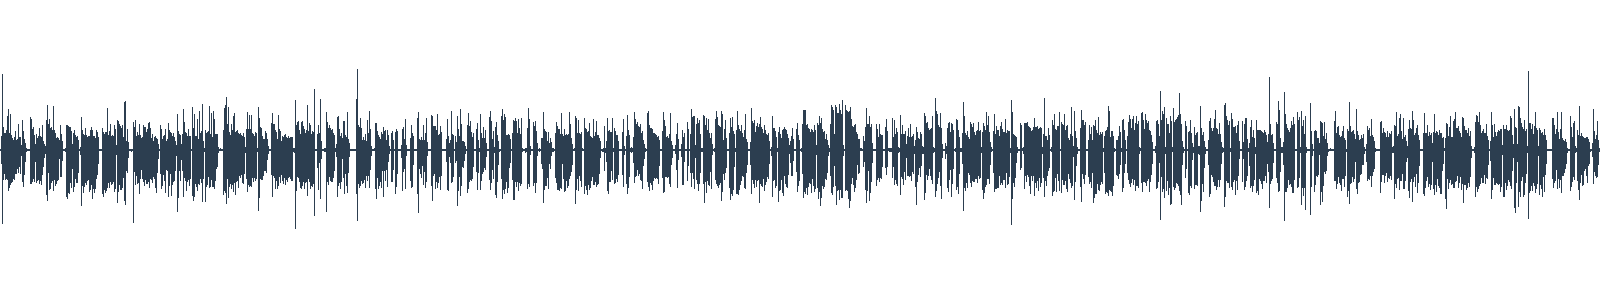 V panoramatickom kine waveform